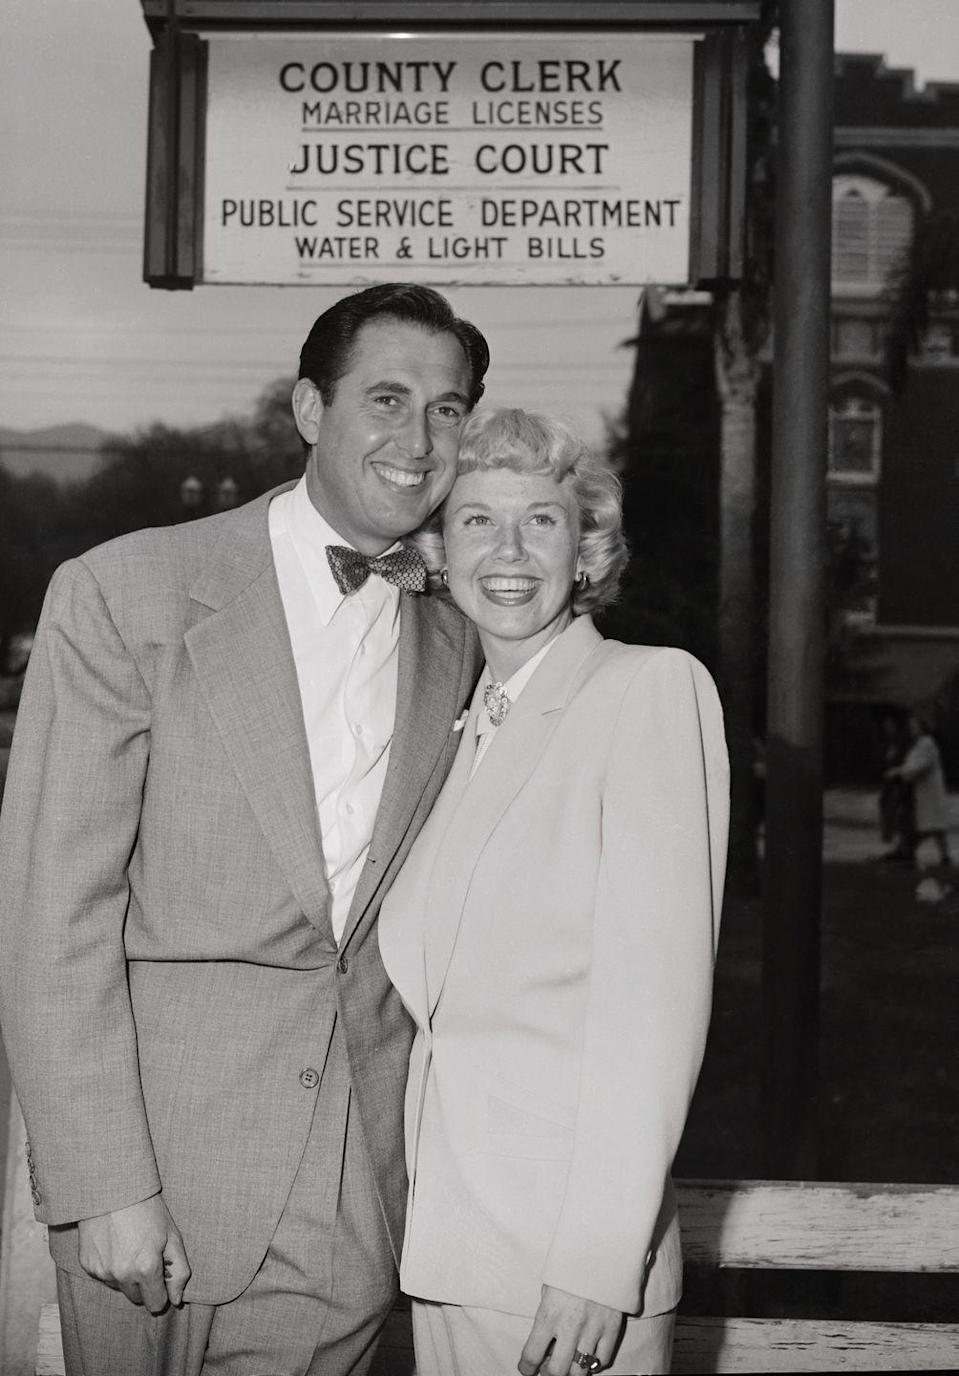 <p>Doris Day and Marty Melcher opted for matching ensembles on their wedding day. Wearing a cream-colored menswear-inspired suit, the <em>Pillow Talk </em>actress made it official with the film producer at Burbank City Hall.</p>